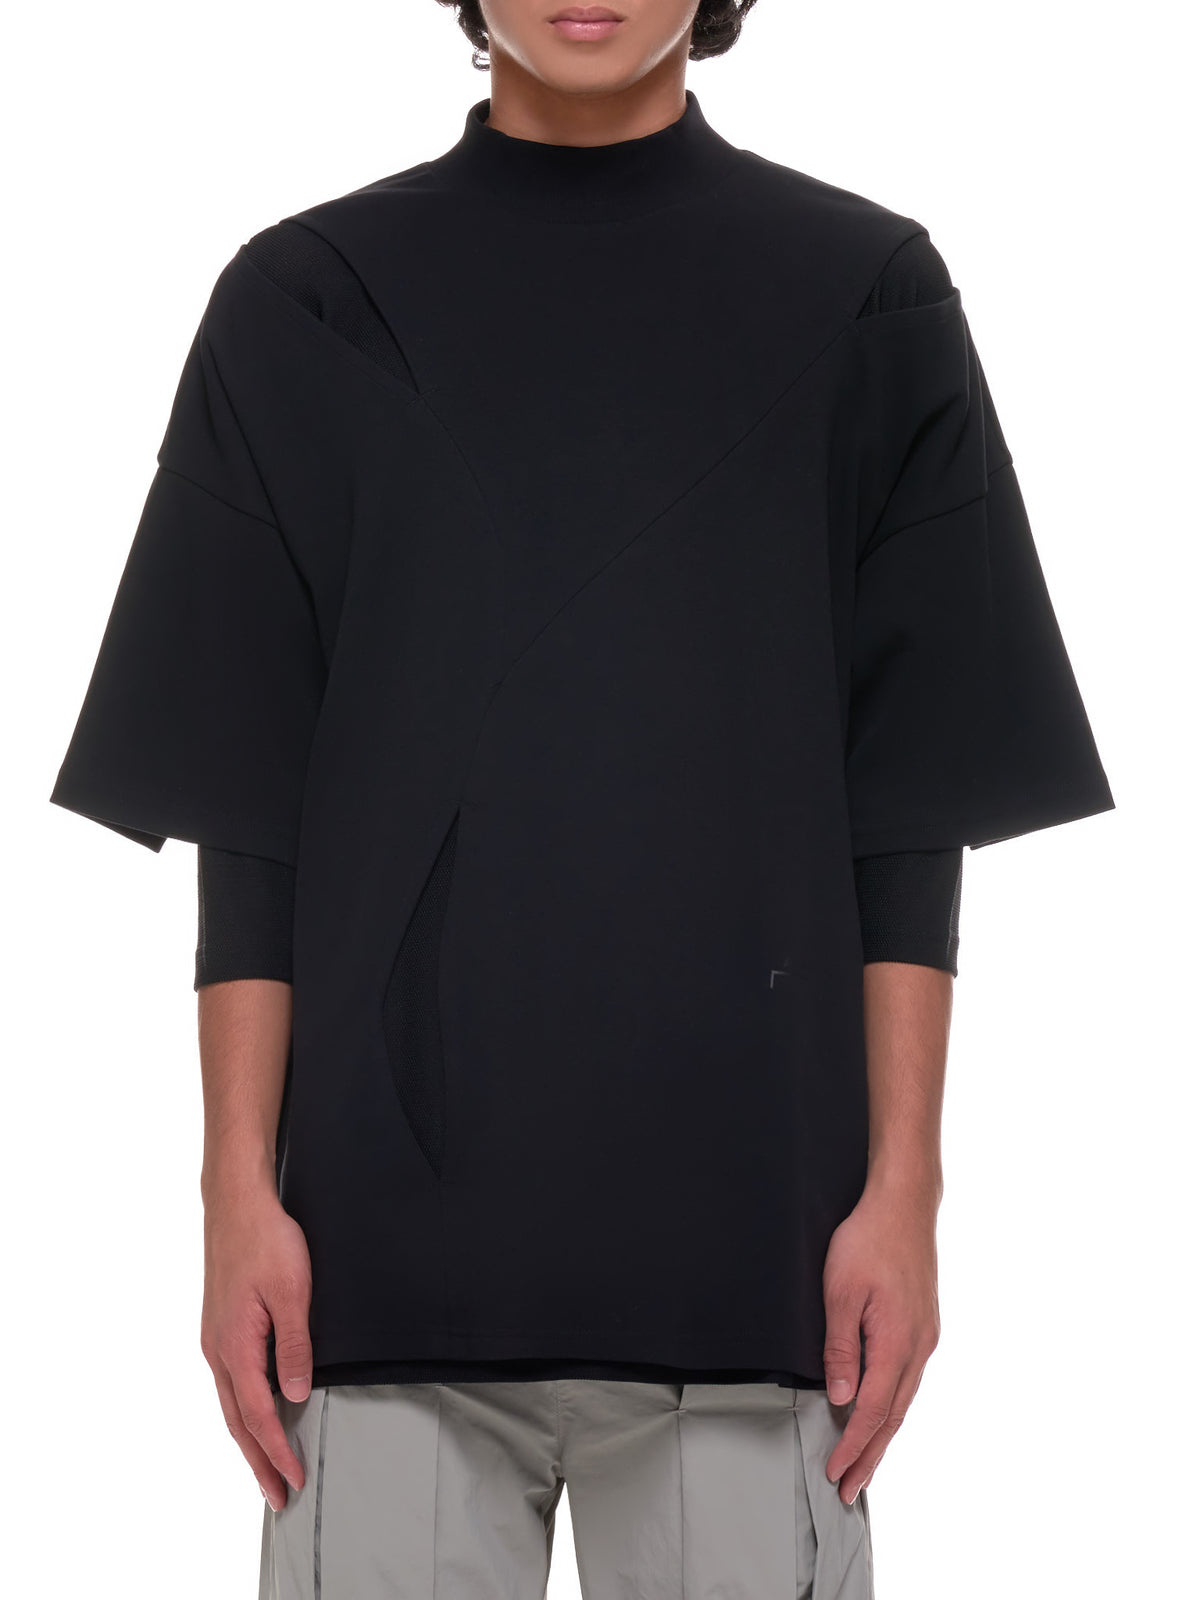 Multi-Layered Concept T-Shirt (MTS026-BLACK)